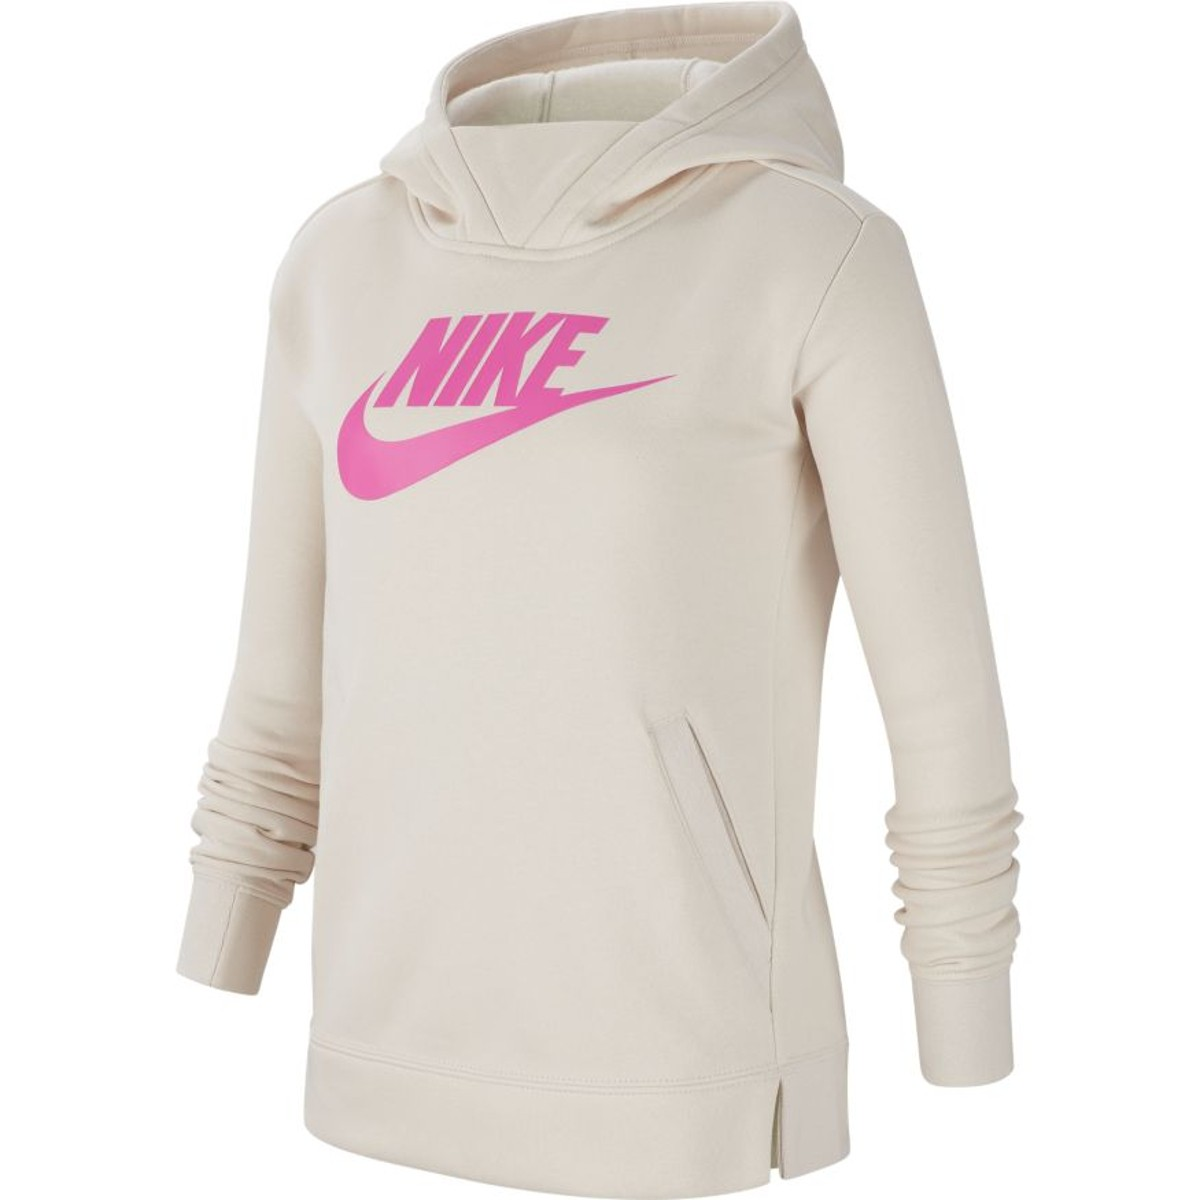 sweat shirt nike fille